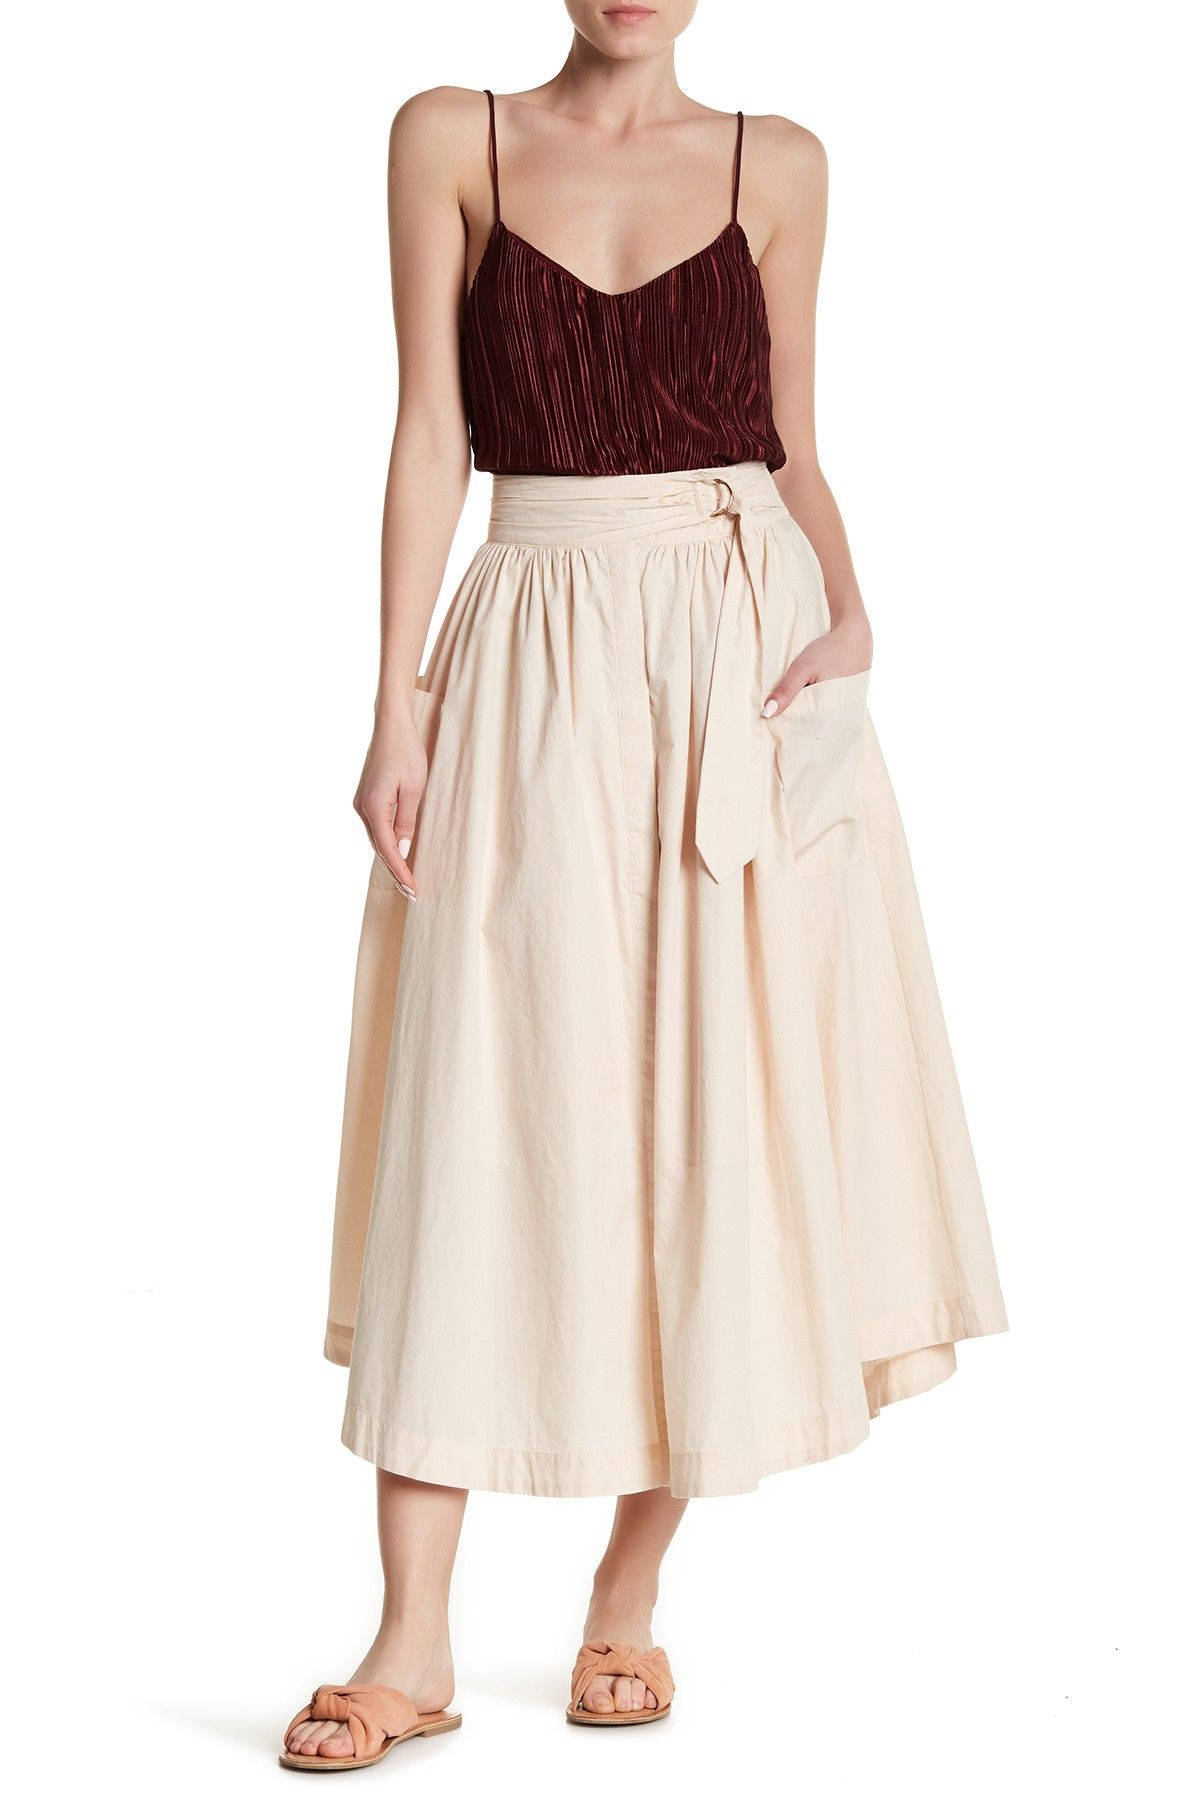 a088e9459c Image of Free People Dream Of Me Midi Skirt